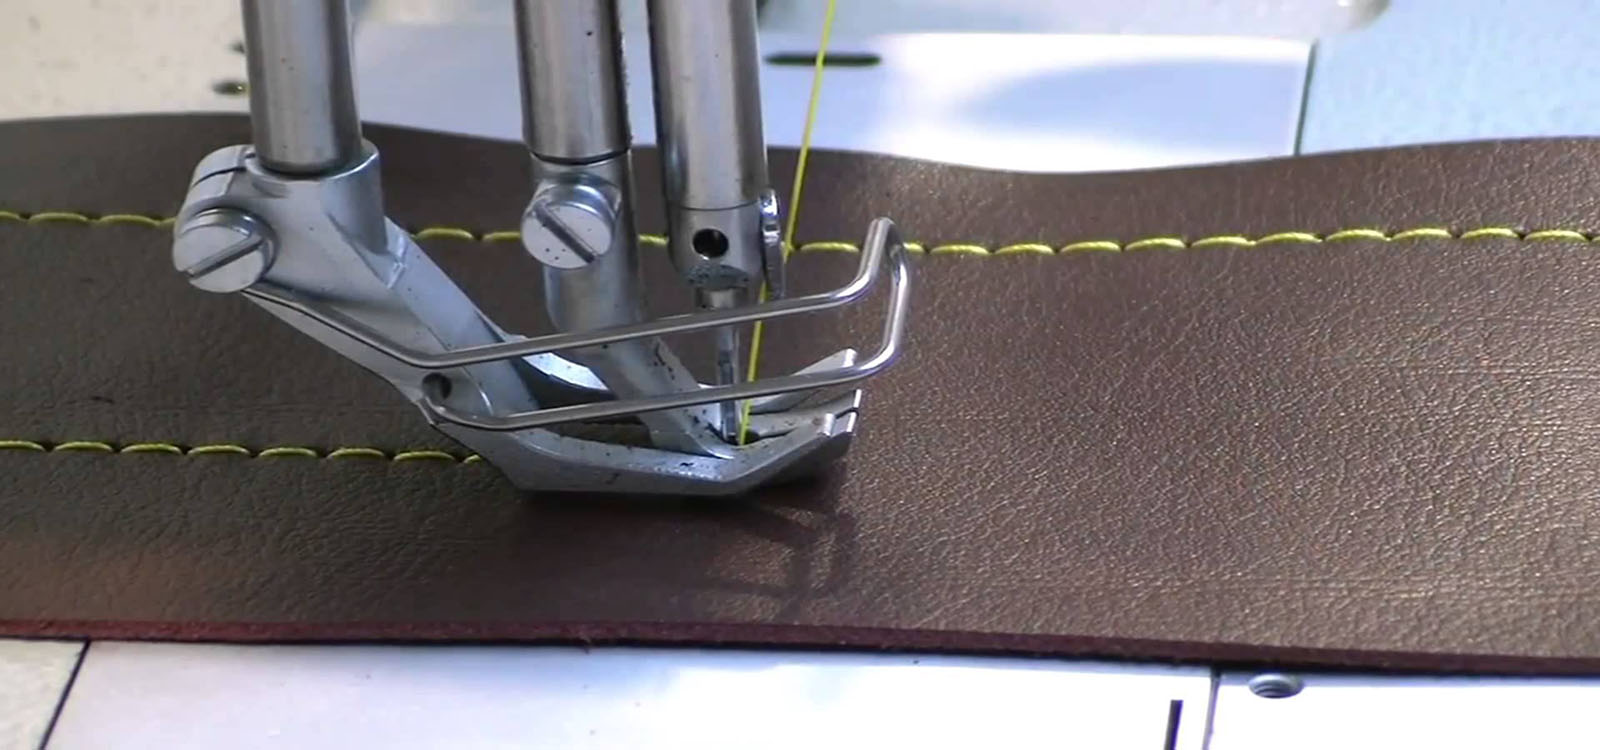 JKC Sewing works exceptionally fast without jeopardising the quality of work